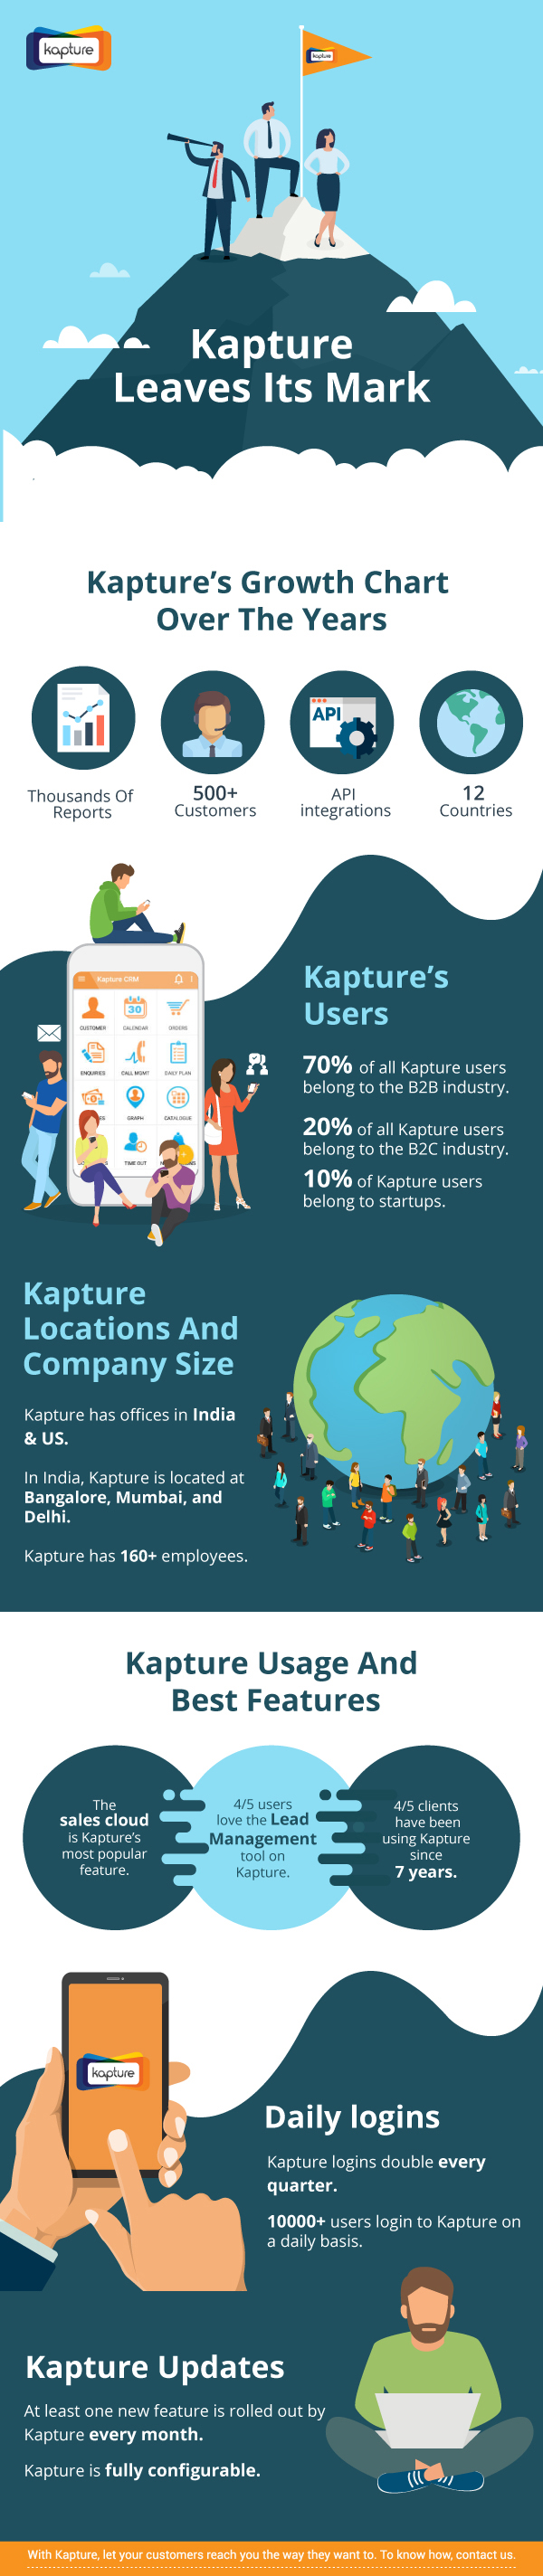 Kapture CRM has been powering business with automation tools through a cloud-based CRM solution. With sales, support and service modules available on a single software, businesses have now begun to hit all their key performance metrics.